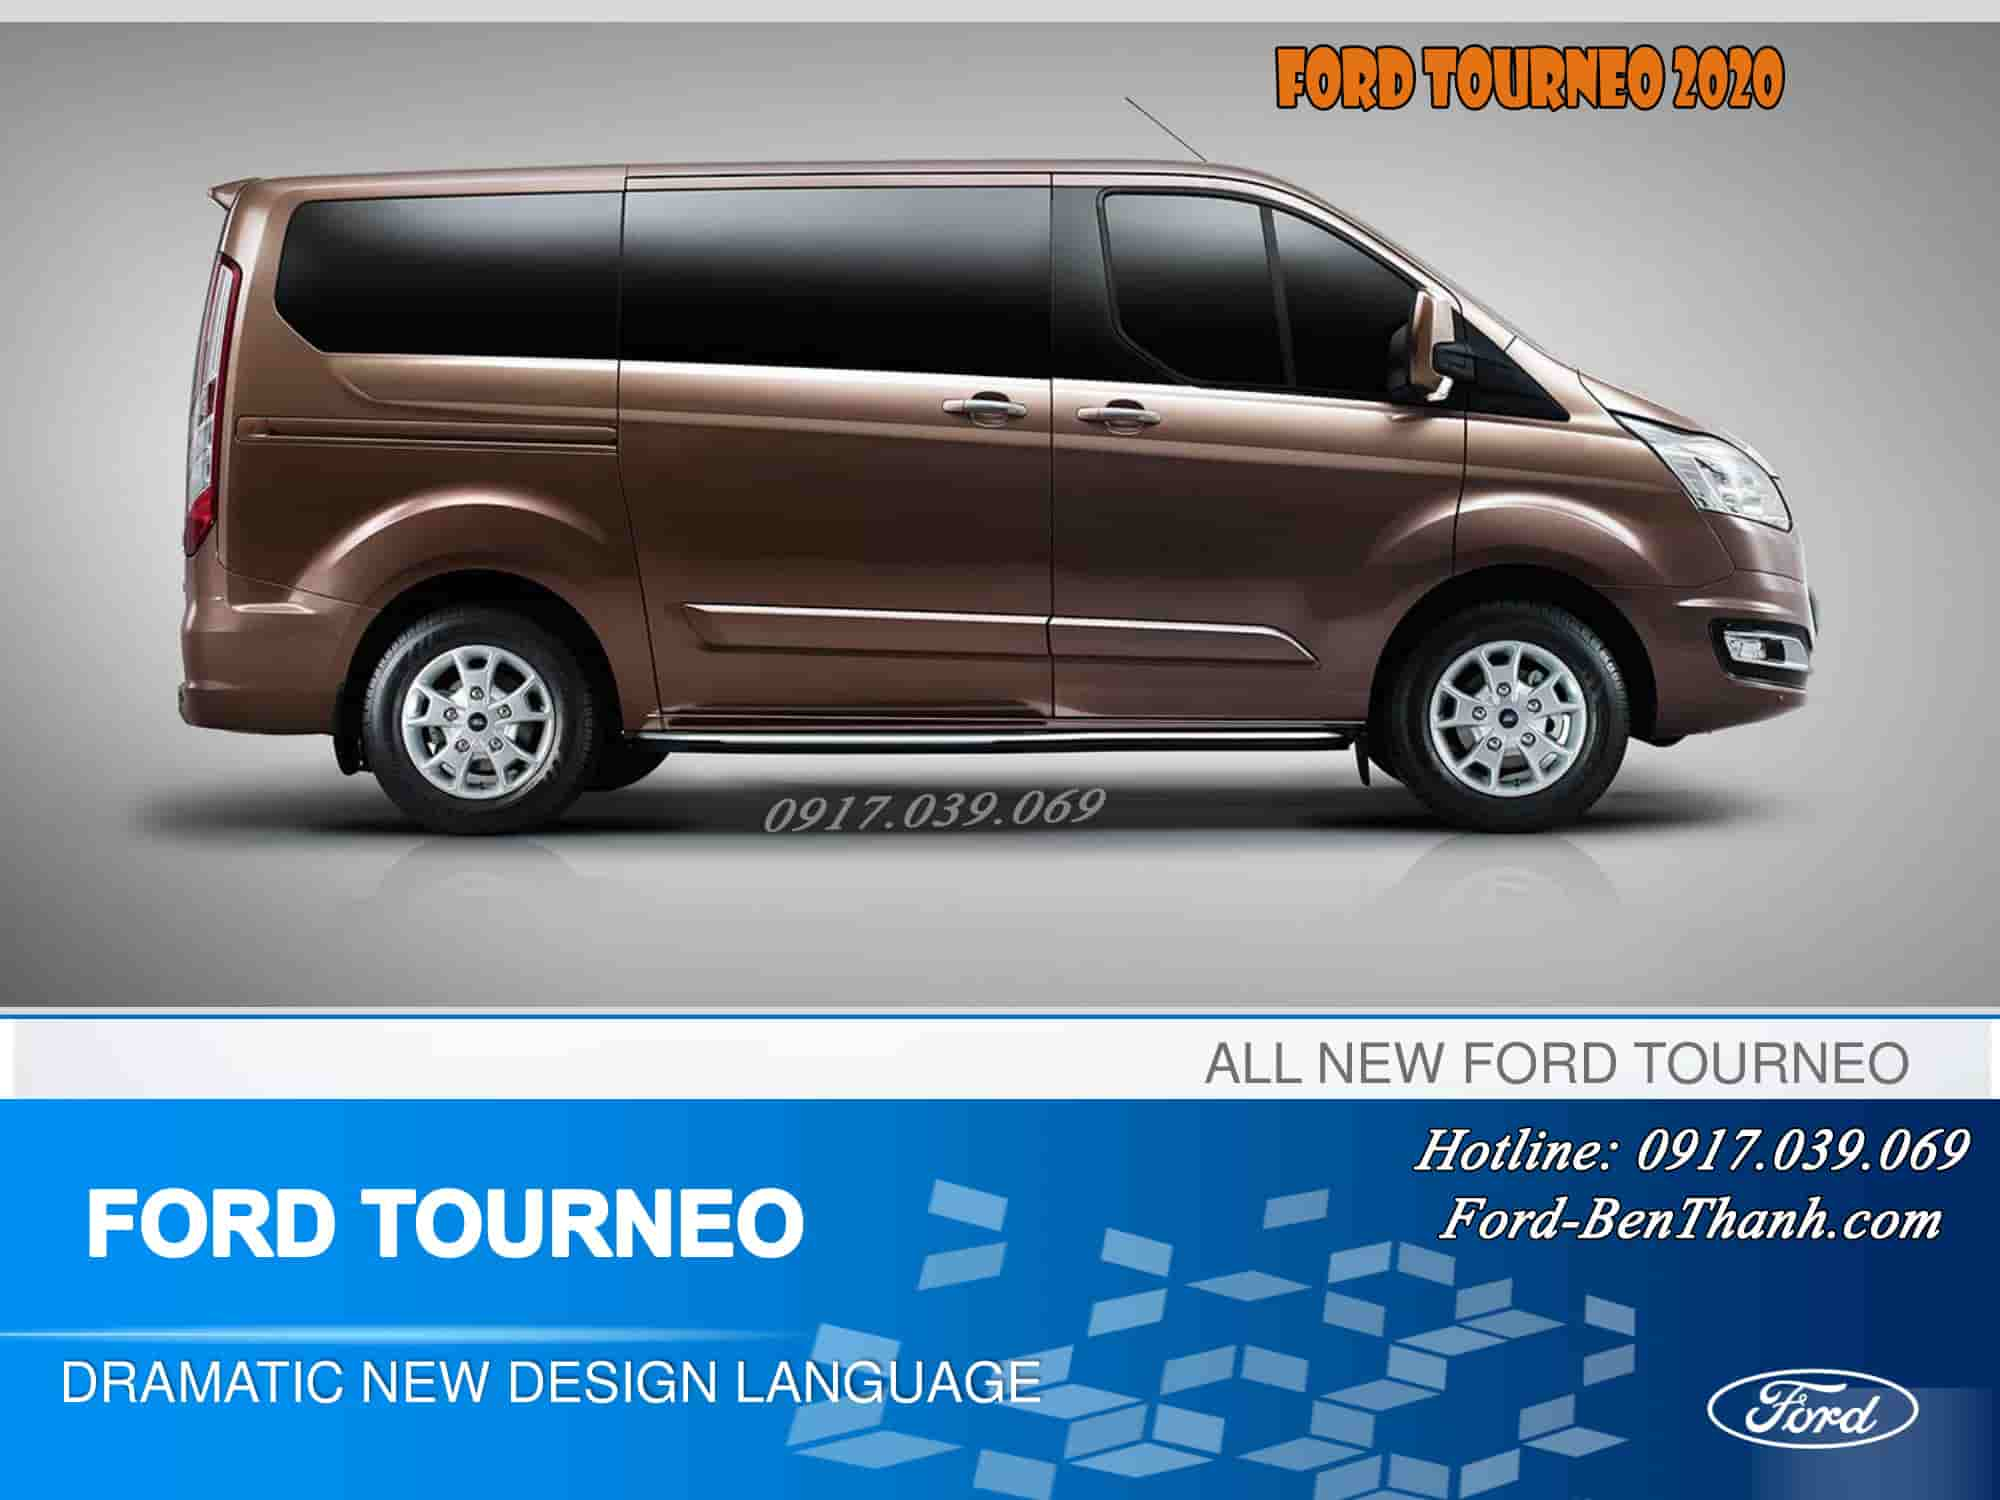 GIÁ XE FORD TOURNEO